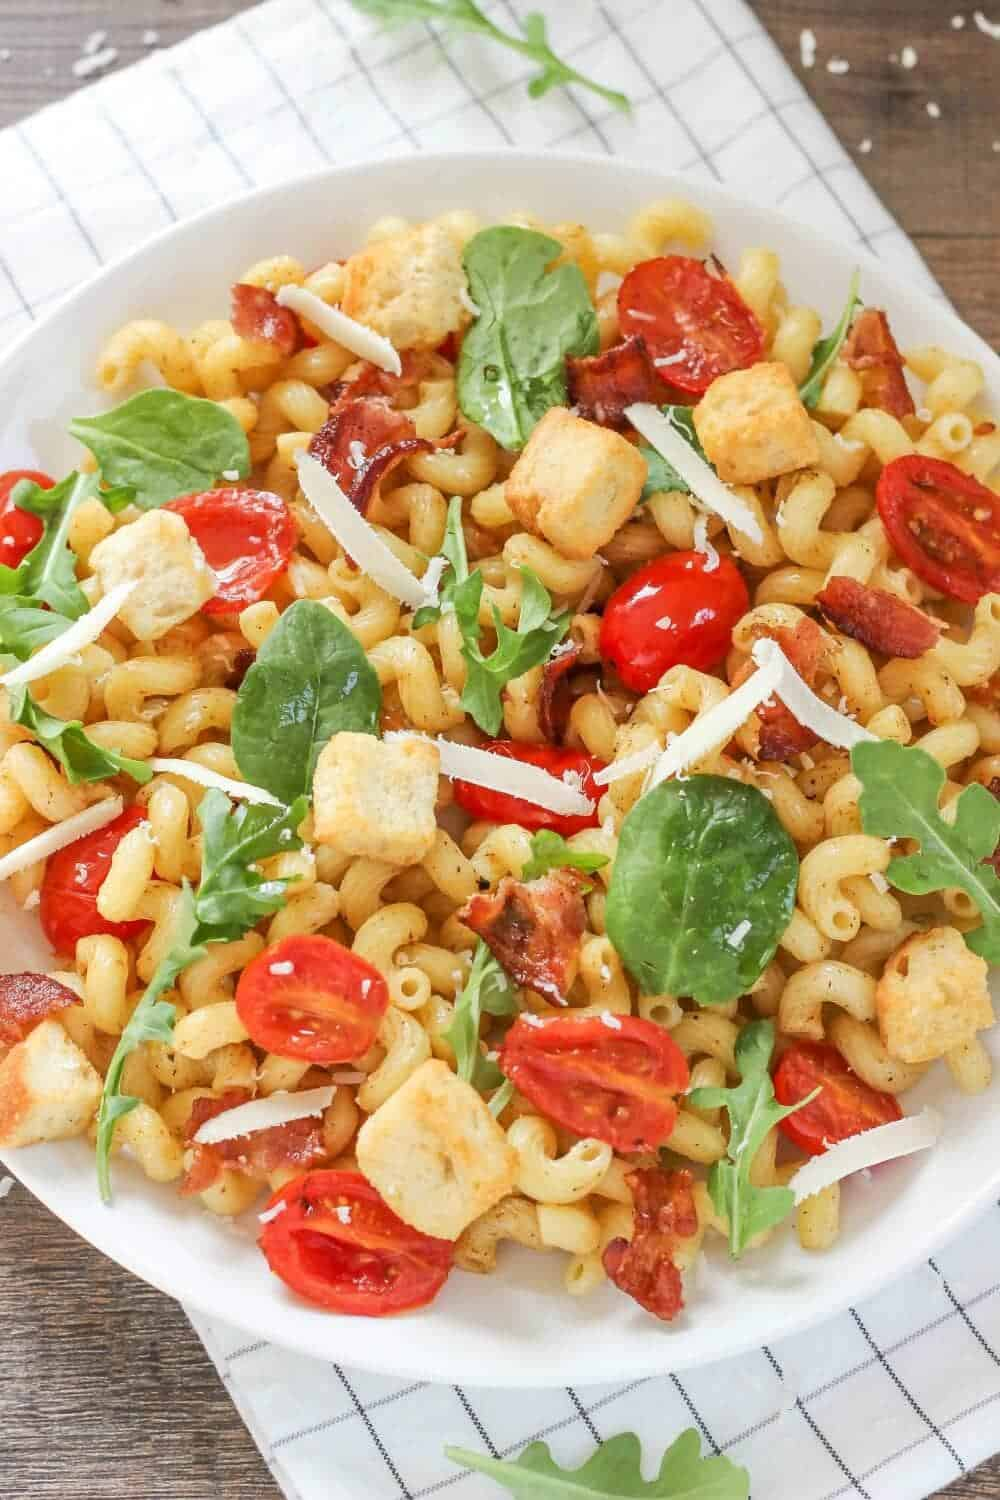 blt pasta salad recipe on a white plate